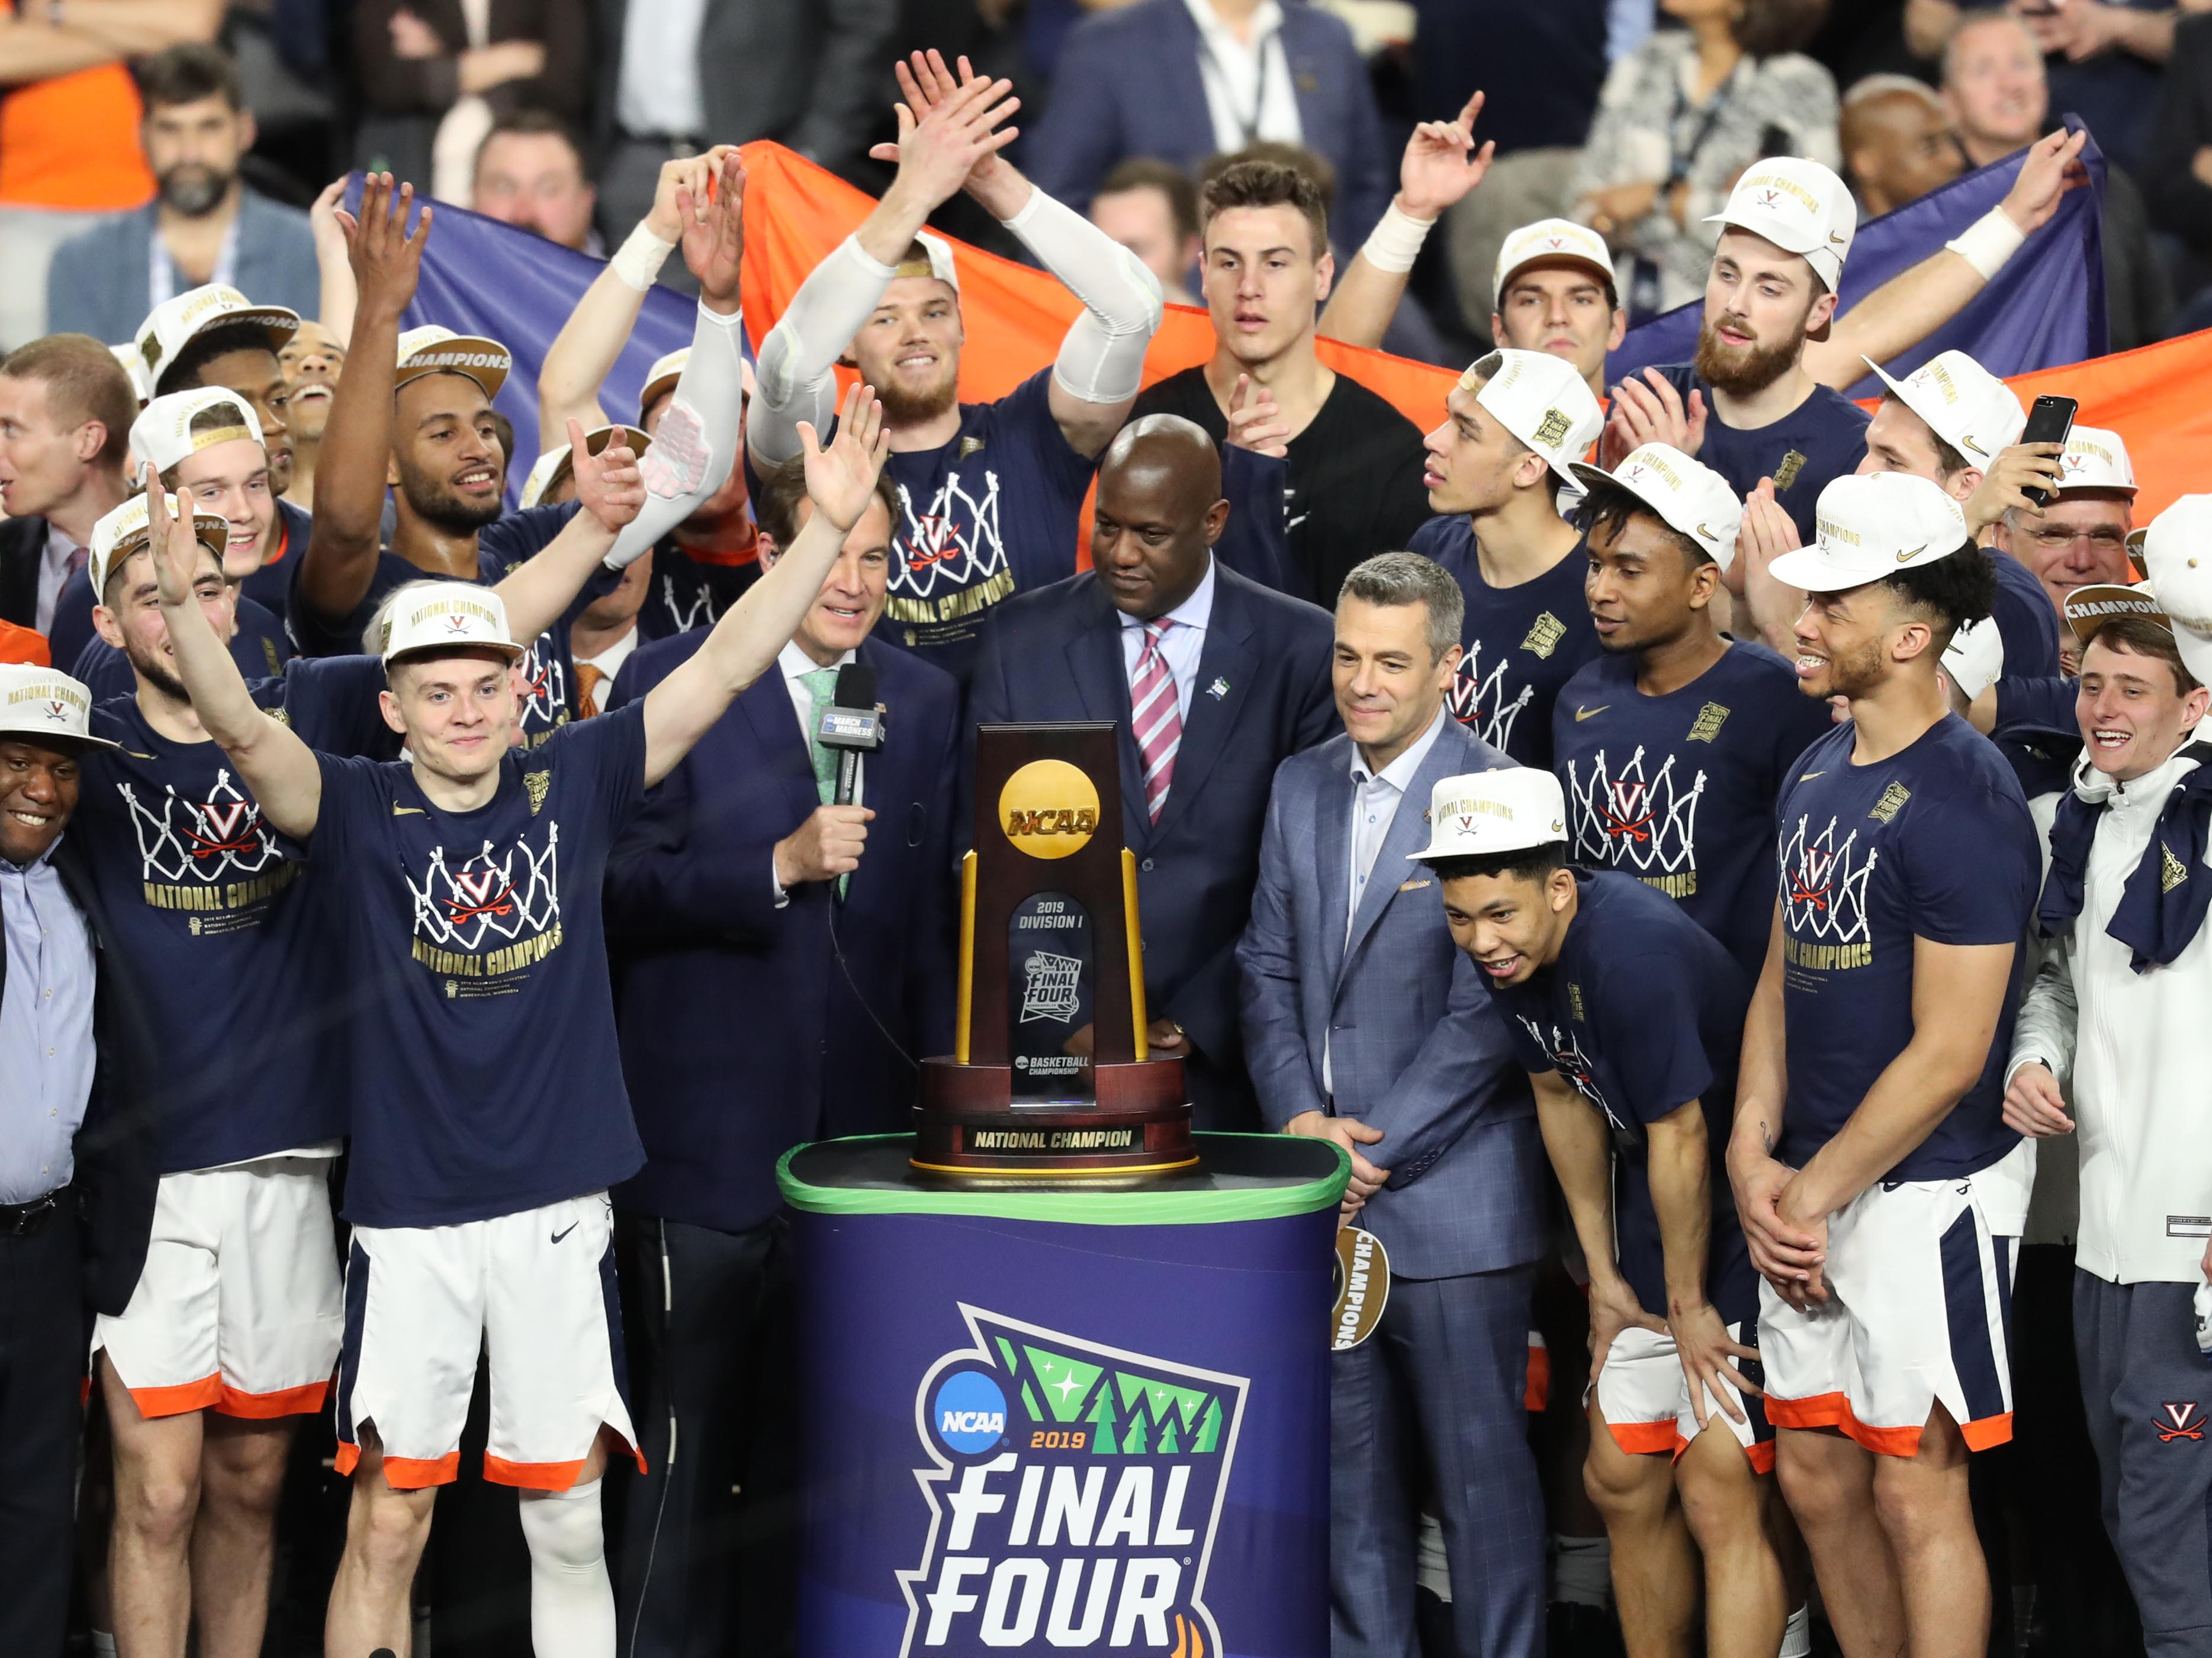 Virginia's charmed national championship run after losing to UMBC is better than Hollywood